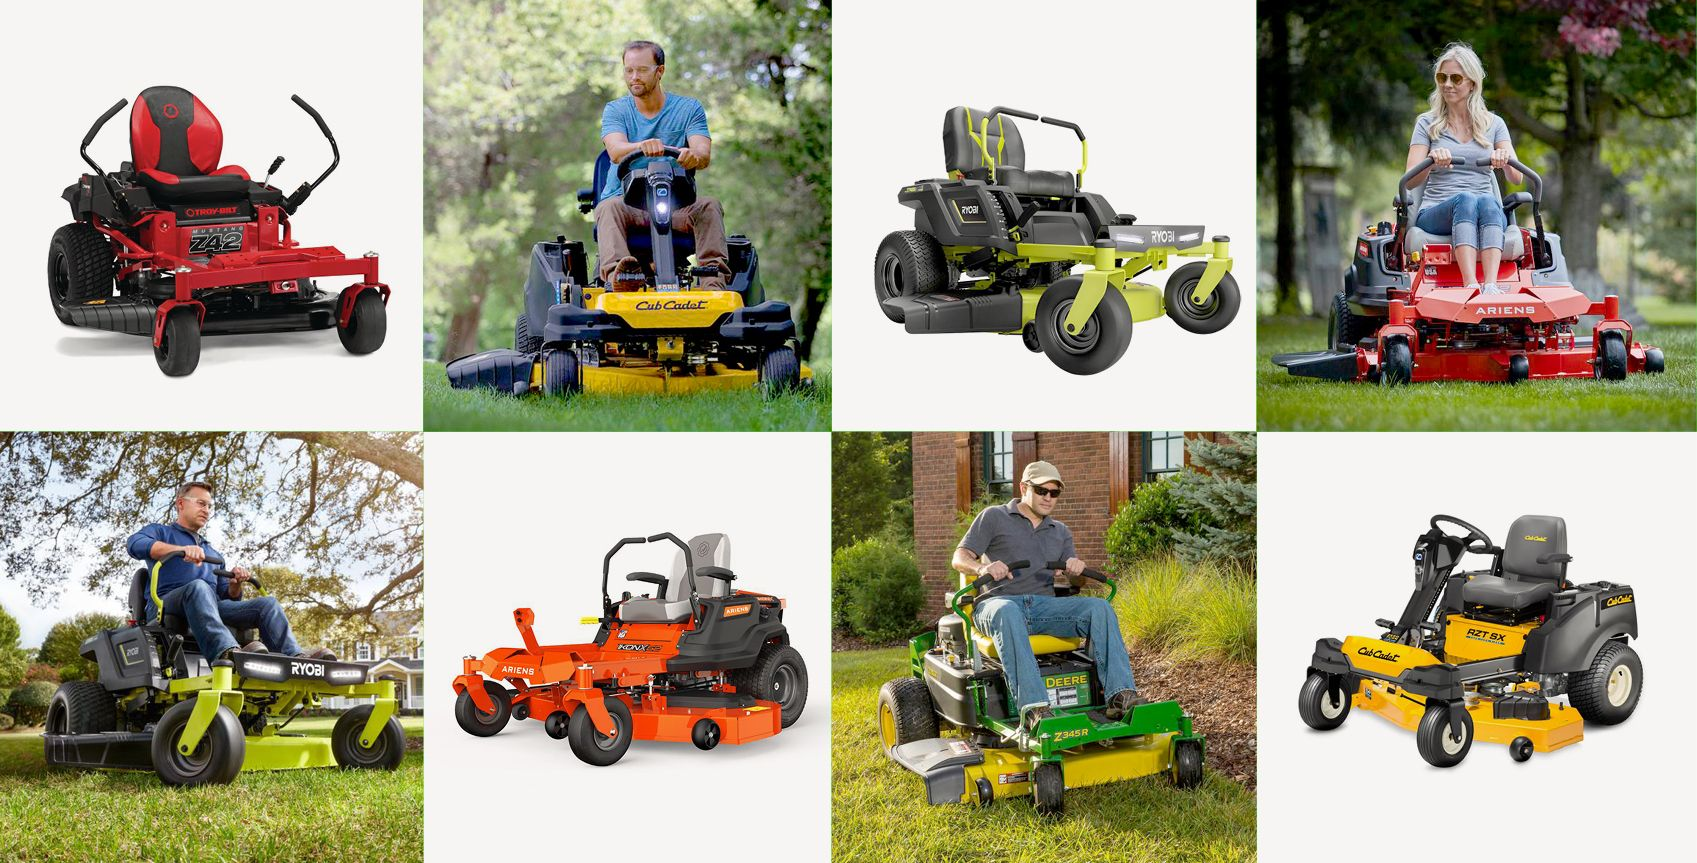 The Best Zero Turn Riding Mowers For Taming Large Lawns